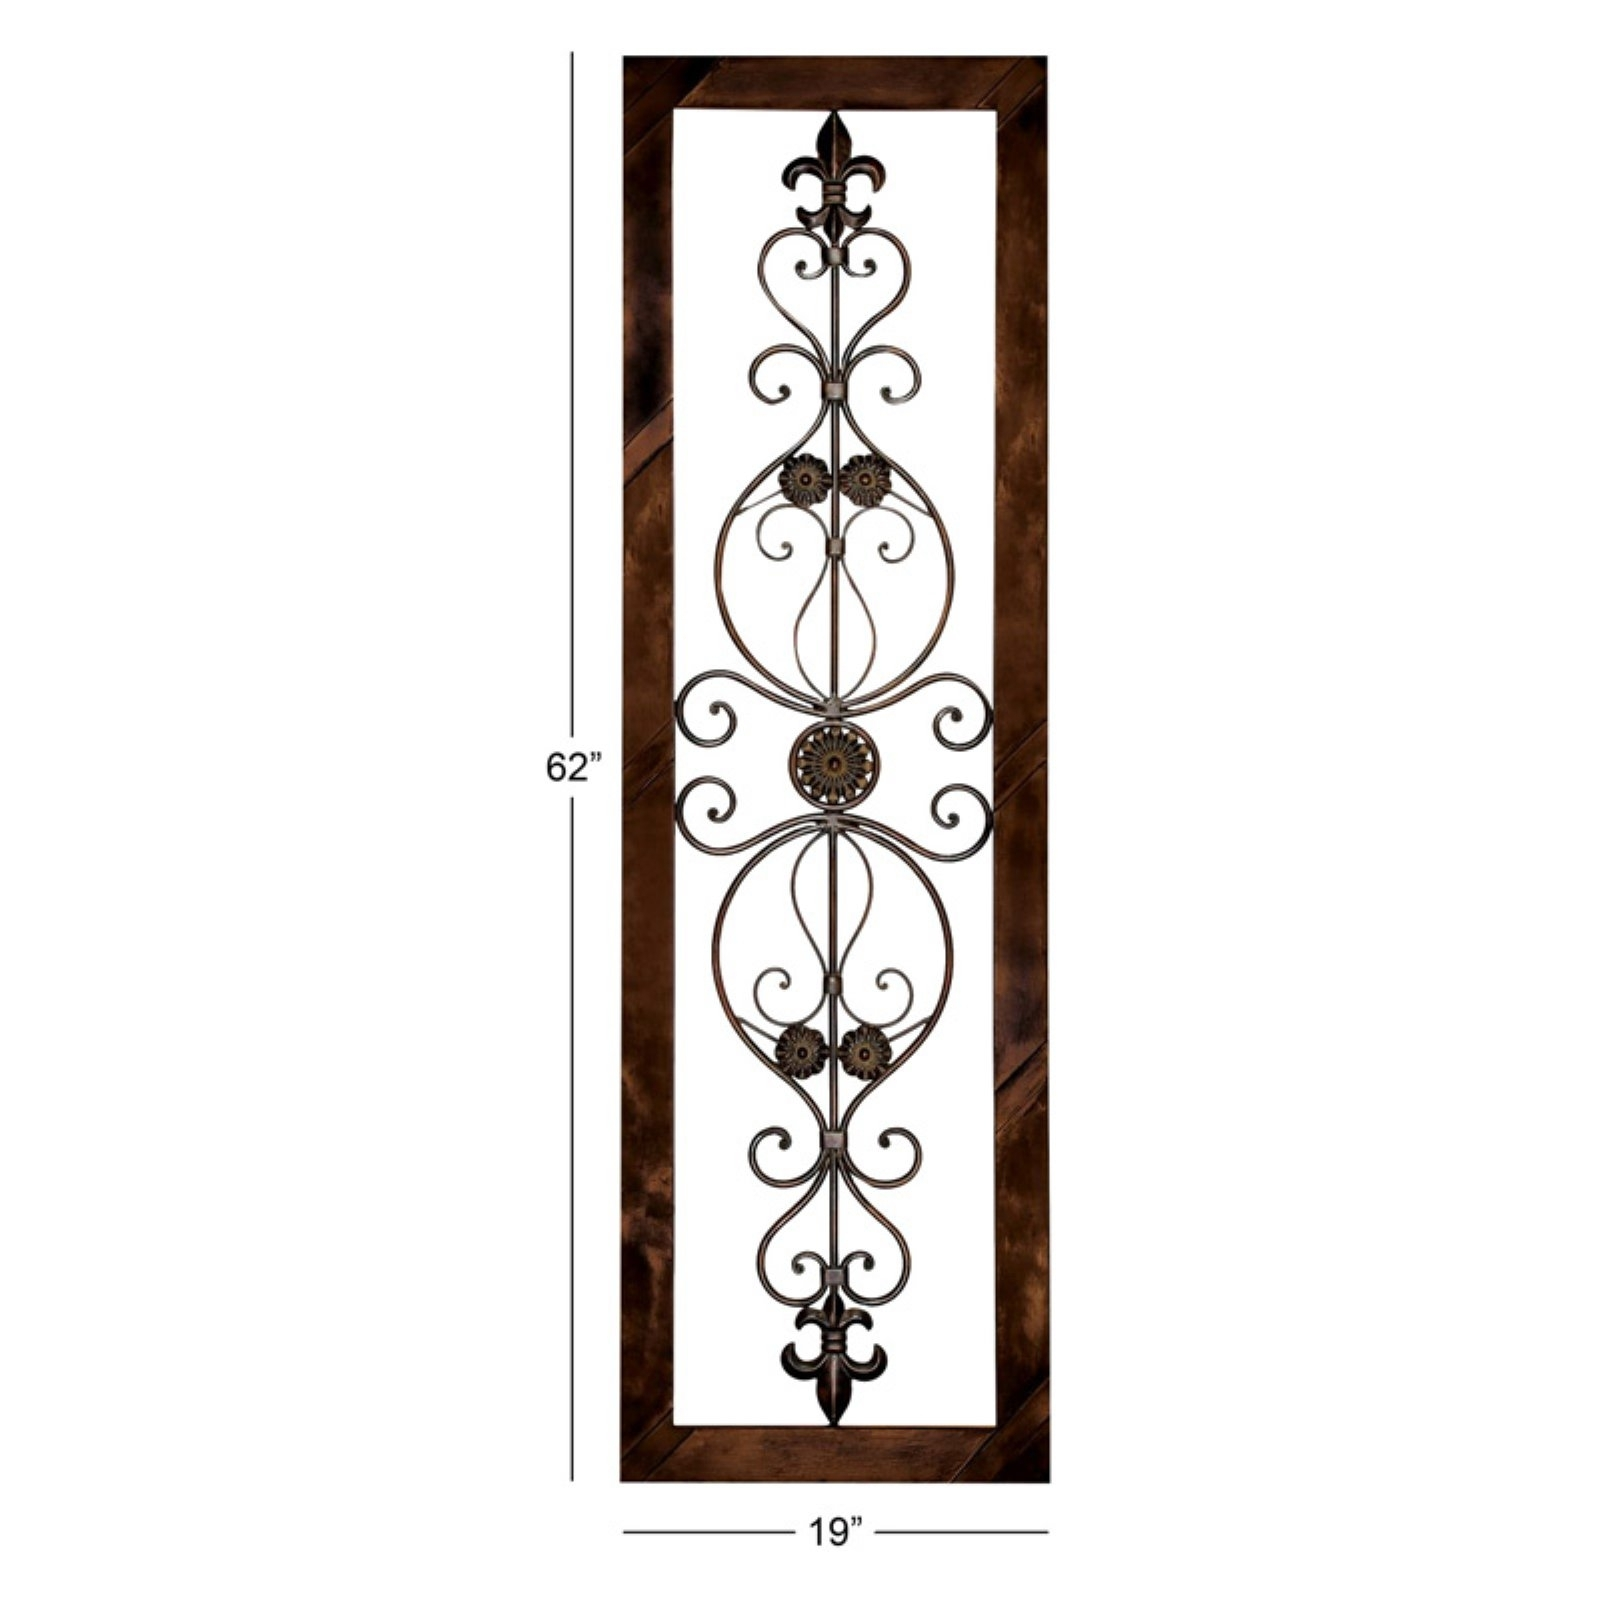 Modern Home Decor Metal Wall Plaque Unique Vertical Hanging Art Wall intended for Vertical Metal Wall Art (Image 8 of 20)